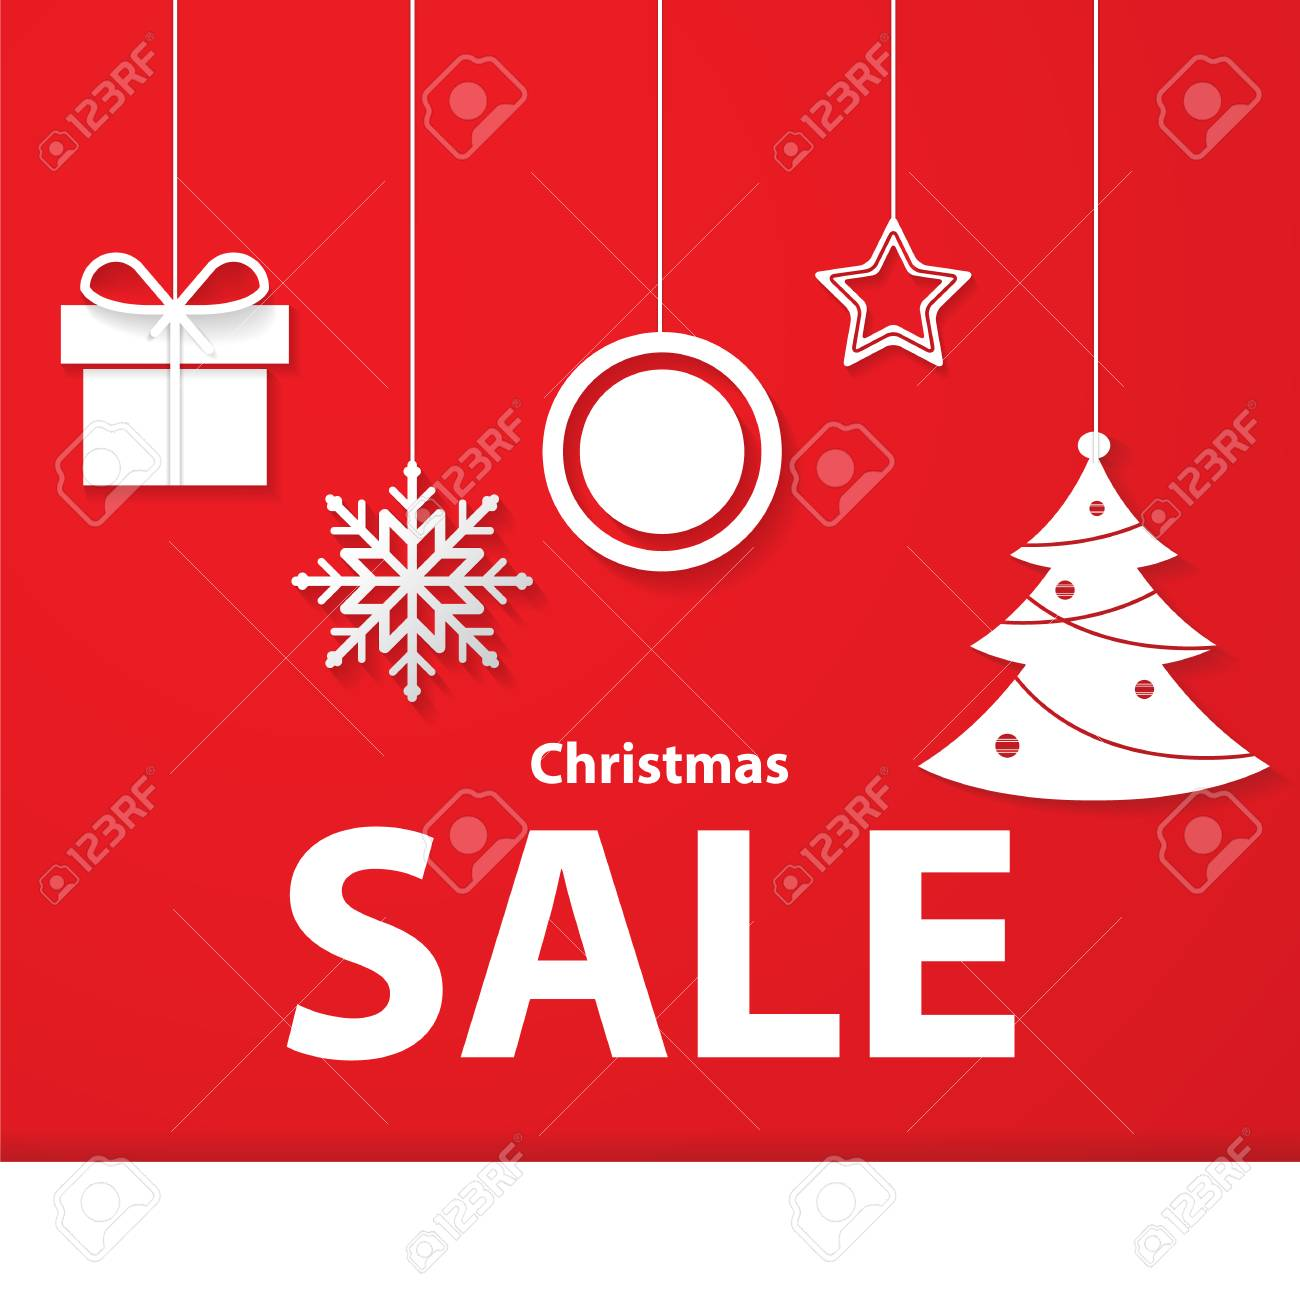 Christmas Gift; Christmas Promotion Sale Stock Photo, Picture And ...